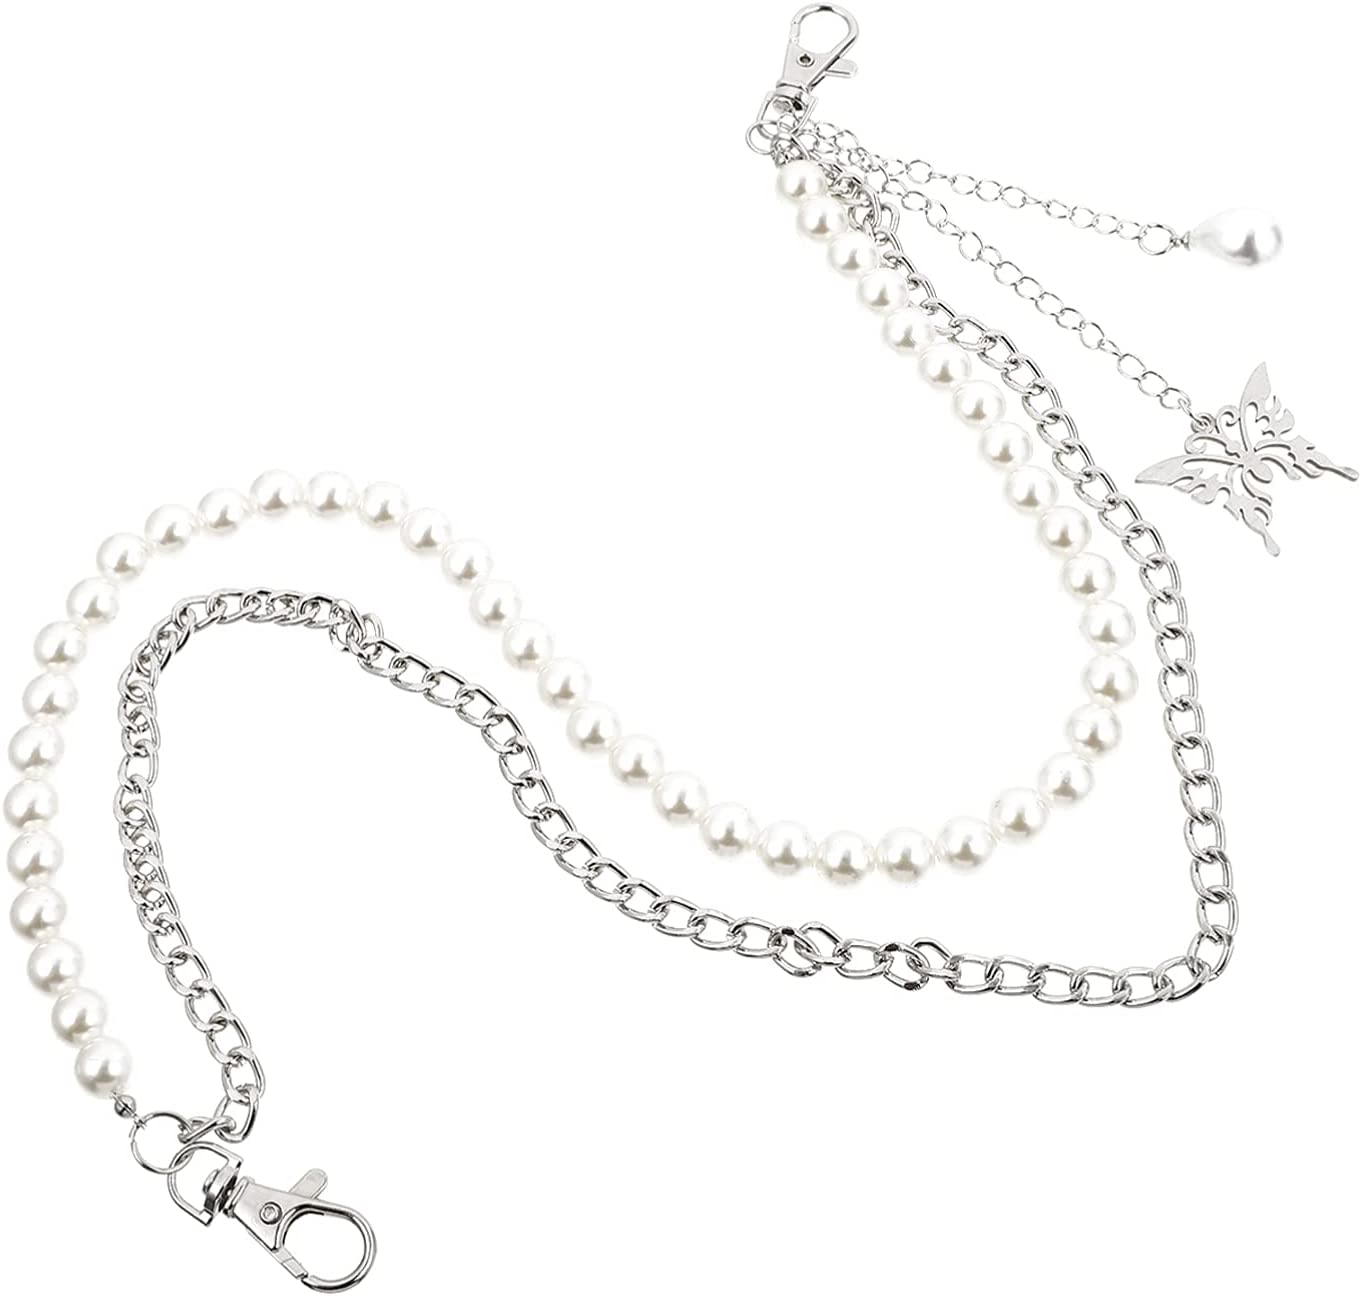 BESTOYARD 2Pcs NEW before selling Body Chains Belt Crystal Free shipping / New P Waist Butterfly